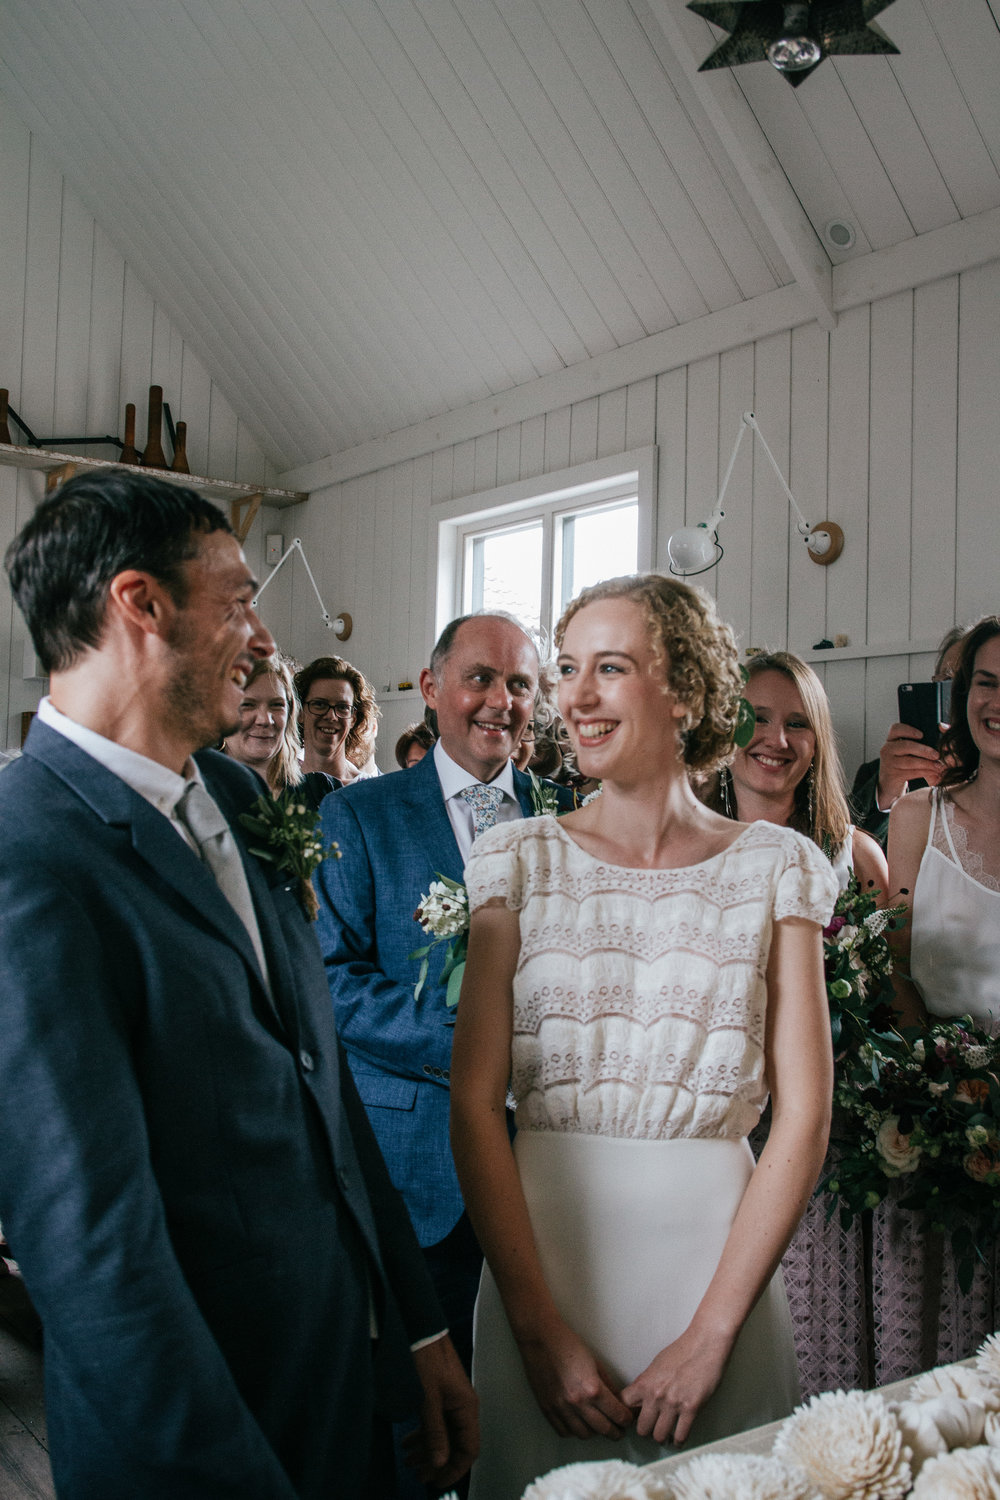 Cathryn & Ben Bailey - Wedding Photography Carolyn Carter